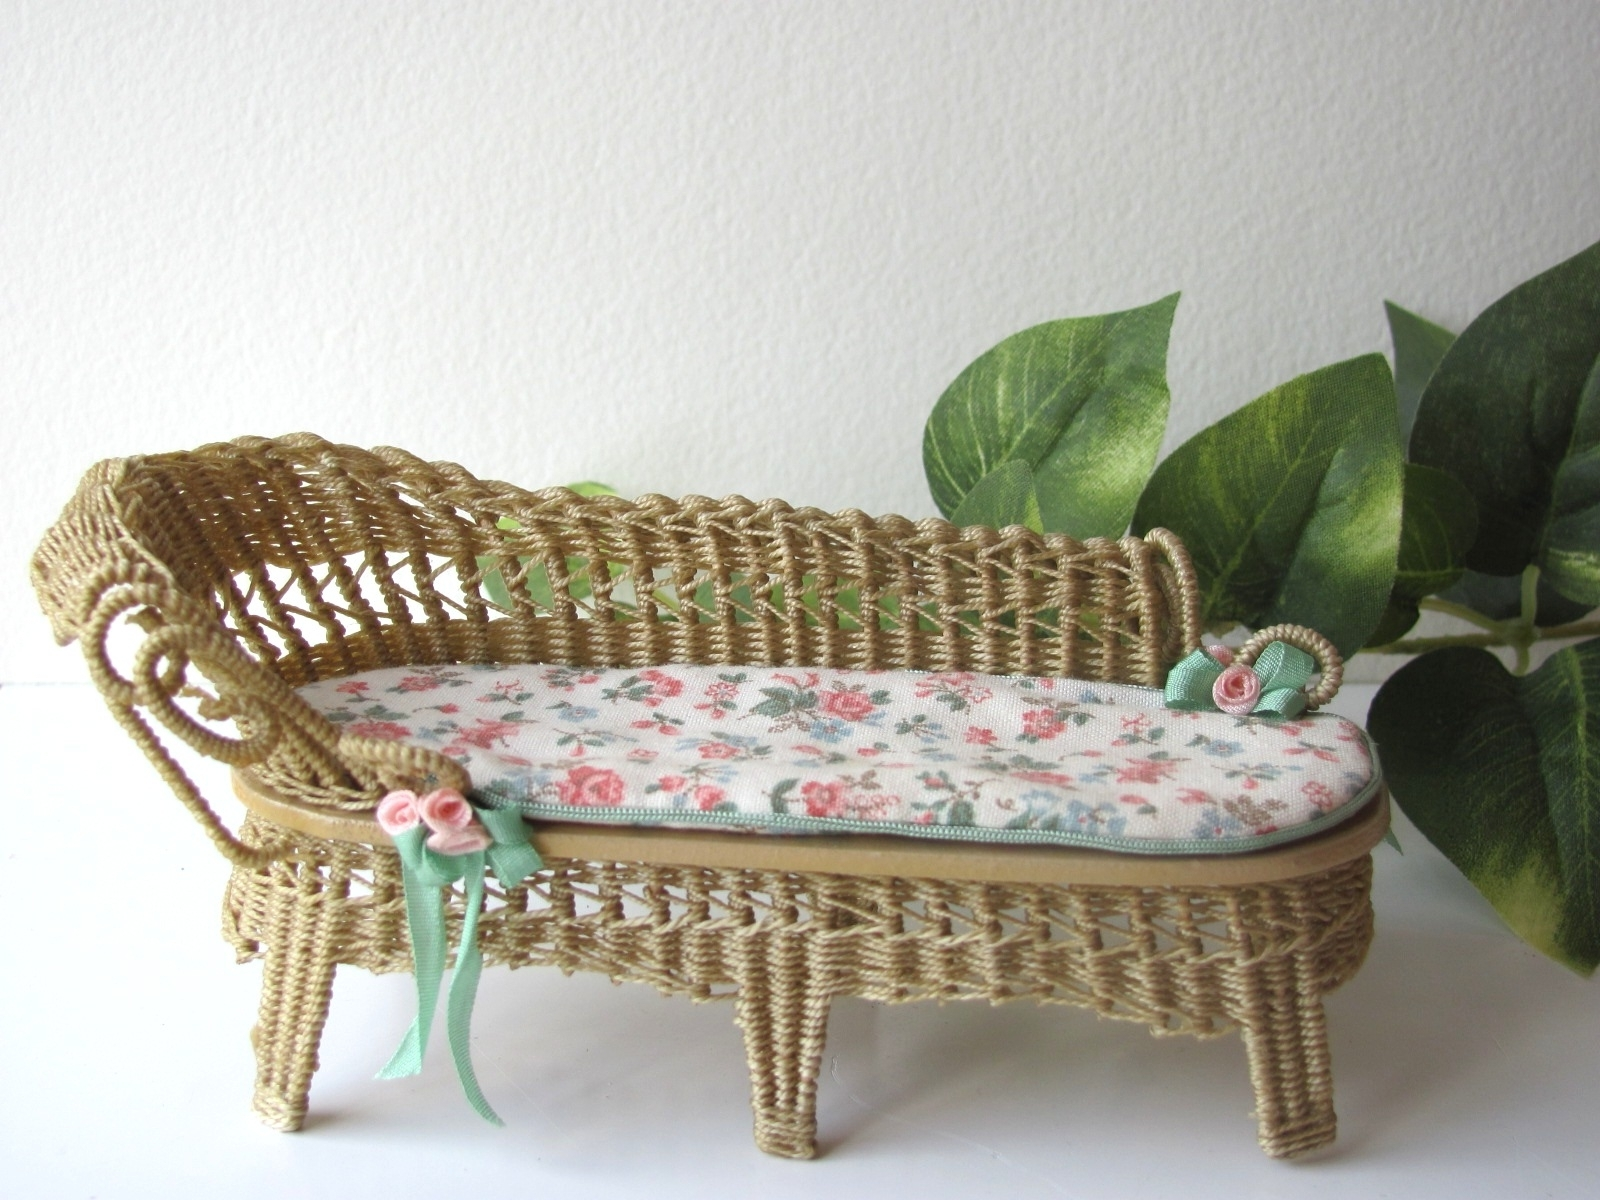 Country Cottage Chic Wicker Chaise Lounge 1/12 Miniature Dollhouse For Well Liked Wicker Chaise Lounge Chairs (View 7 of 15)